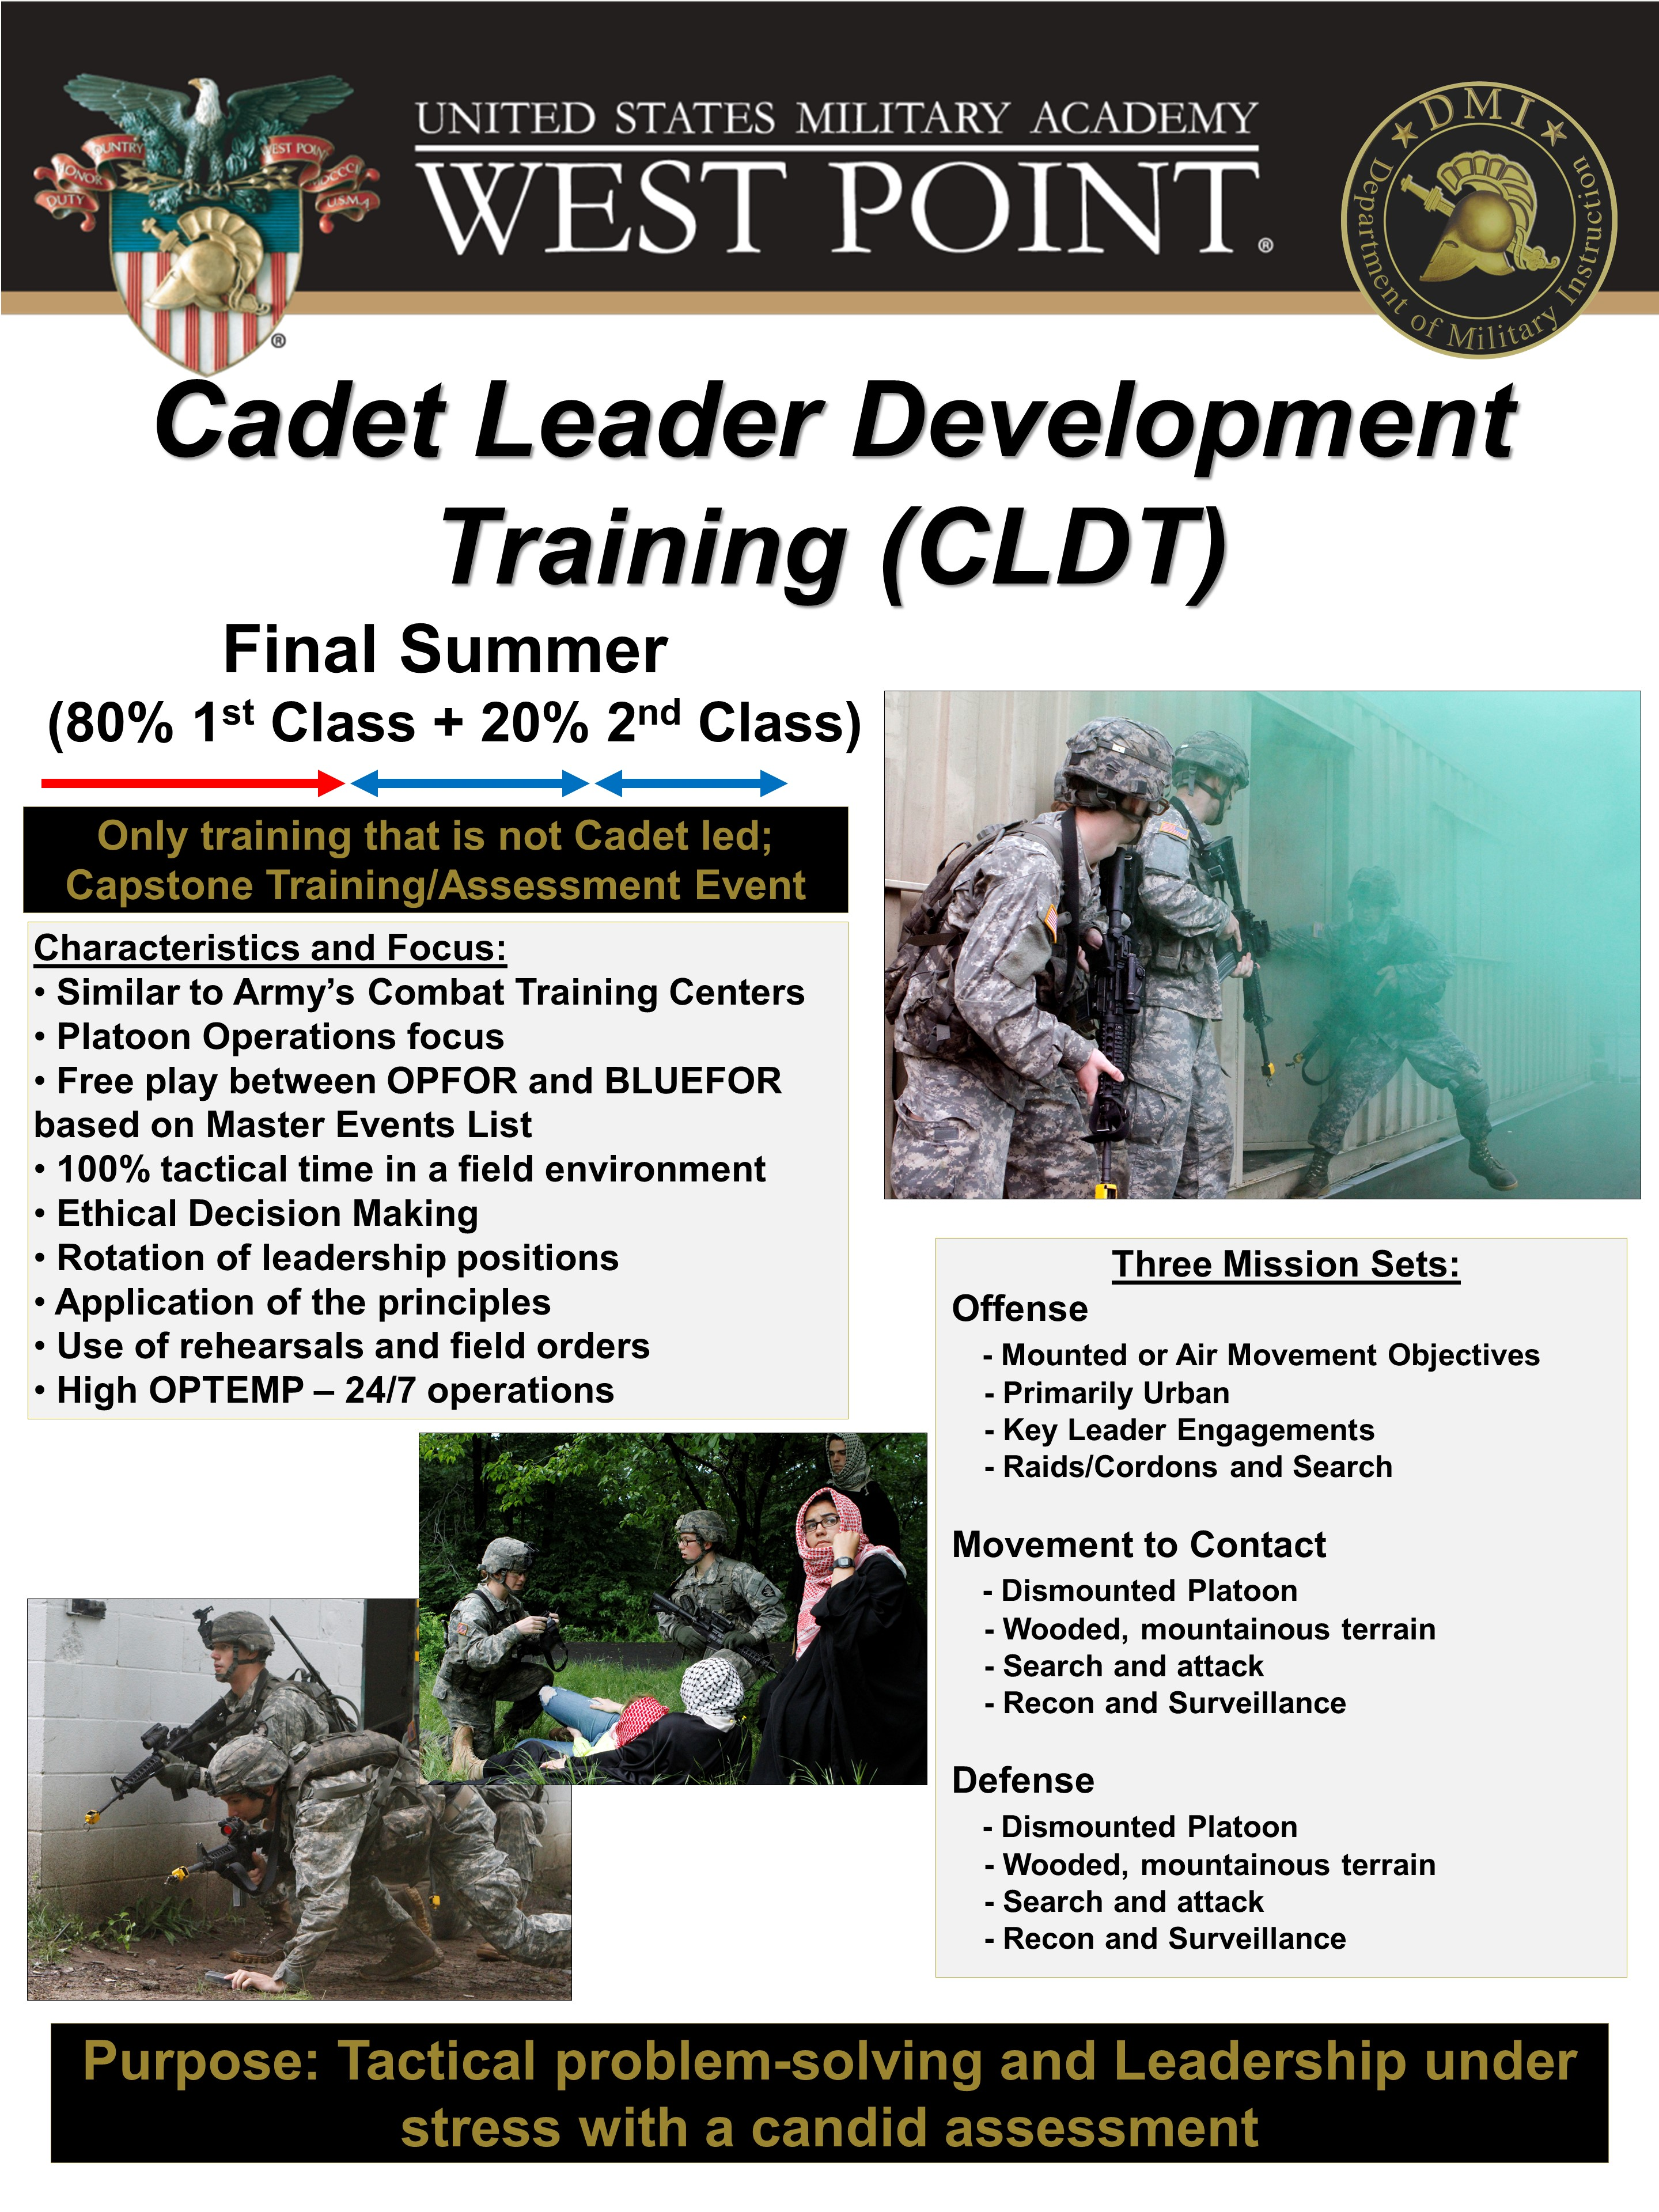 Cadet Leader Development Training